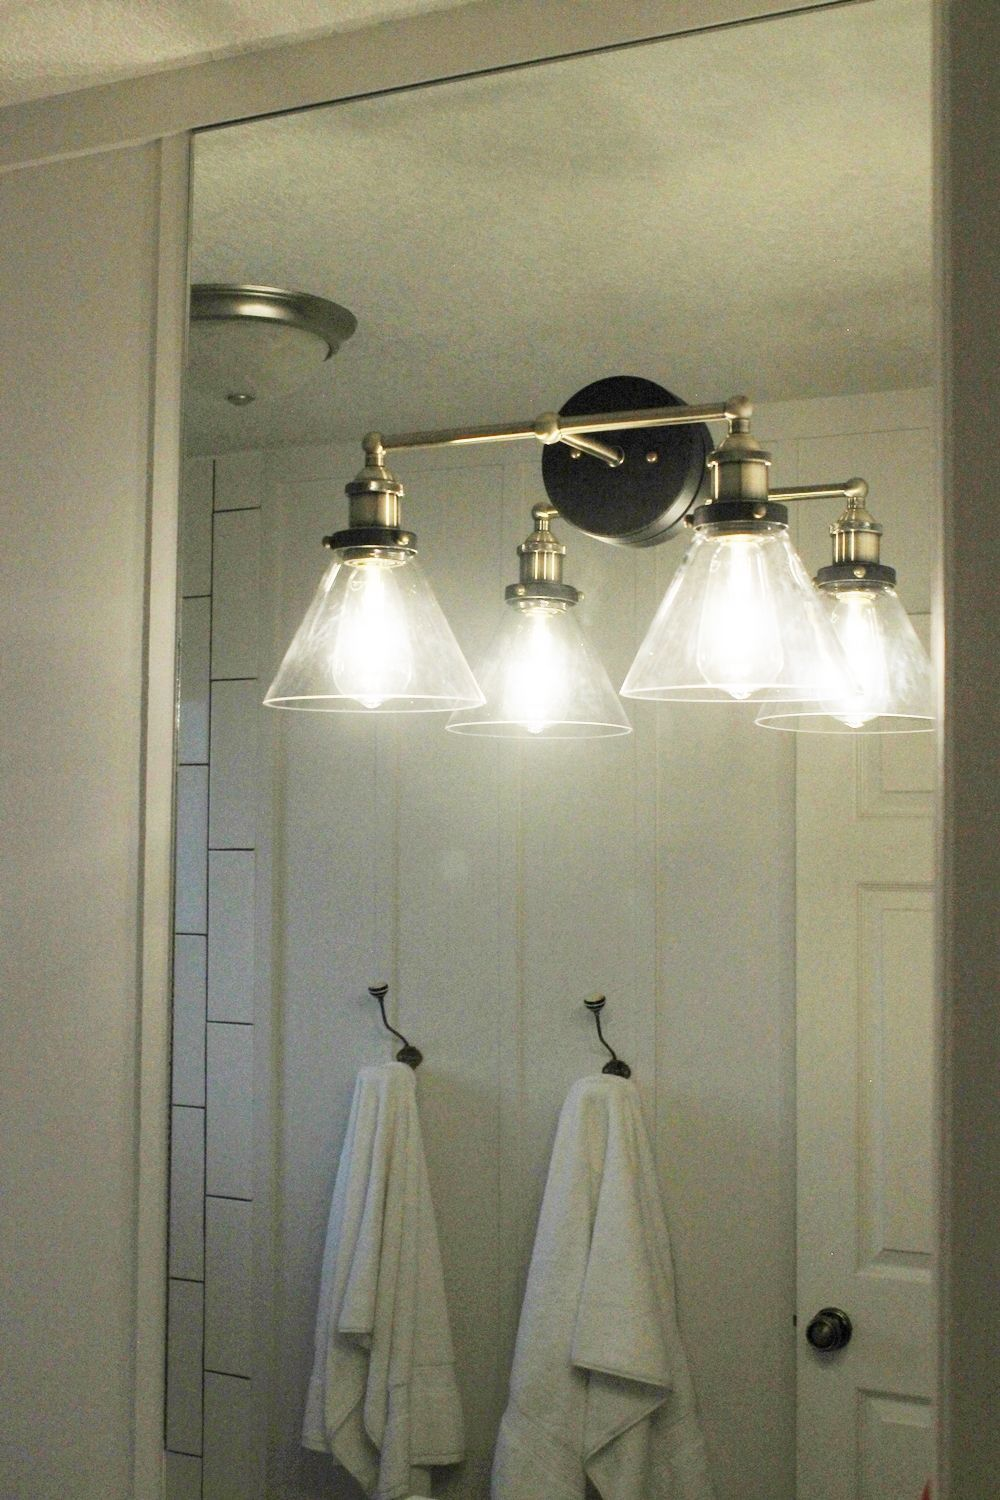 to Mount a Light On Top of a Mirror Bathroom Vanity